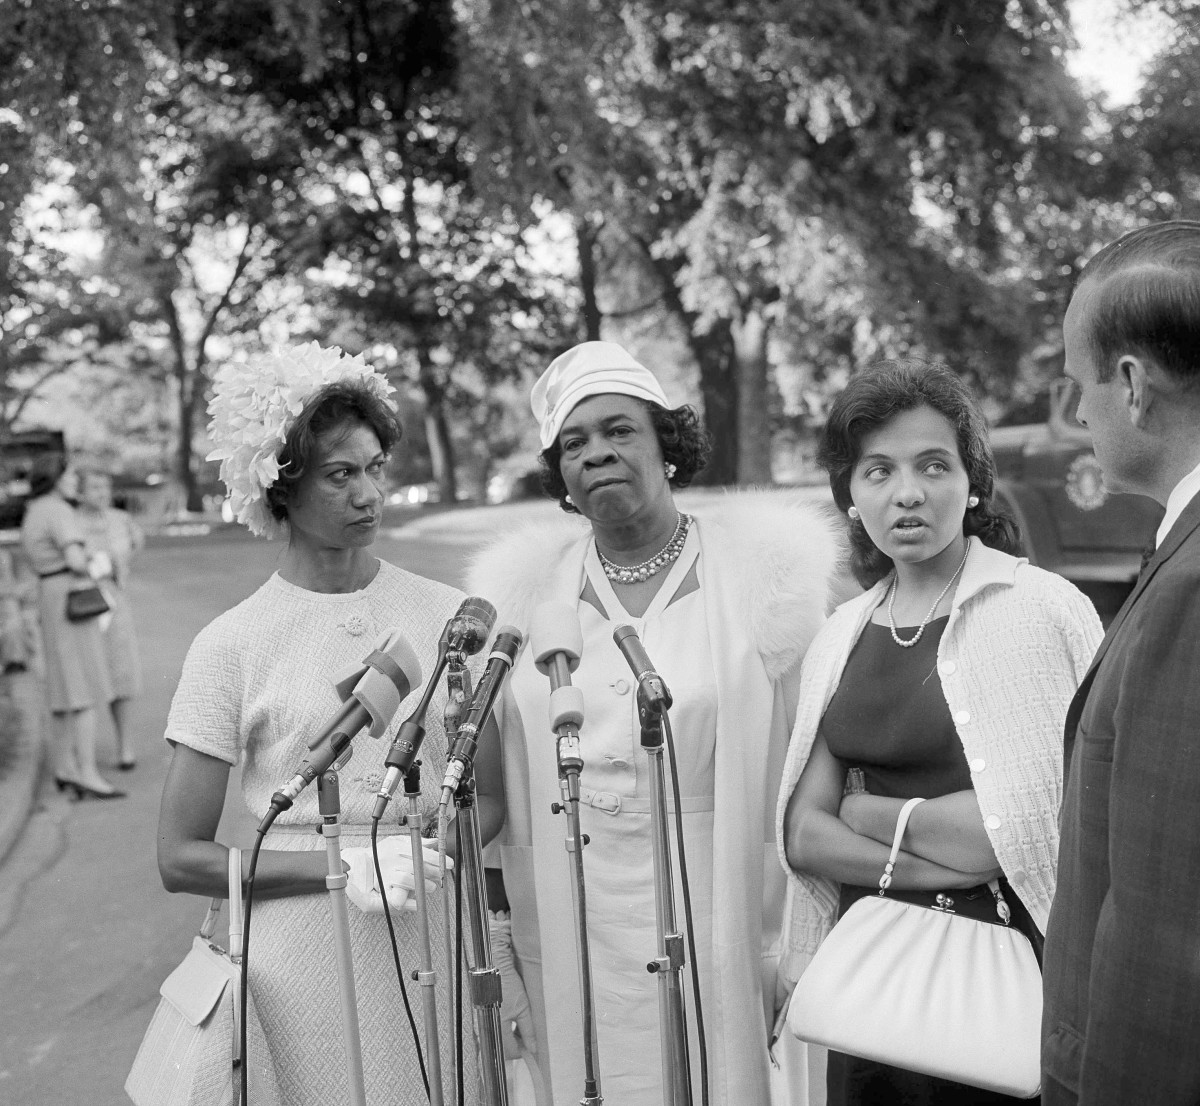 Gloria Richardson, Dr. Rosa L. Gragg and Diane Nash being interviewed after attending the White House to meet with President John F. Kennedy. He had asked 300 representatives of Women's organizations to back his civil rights program to help solve the racial problems.